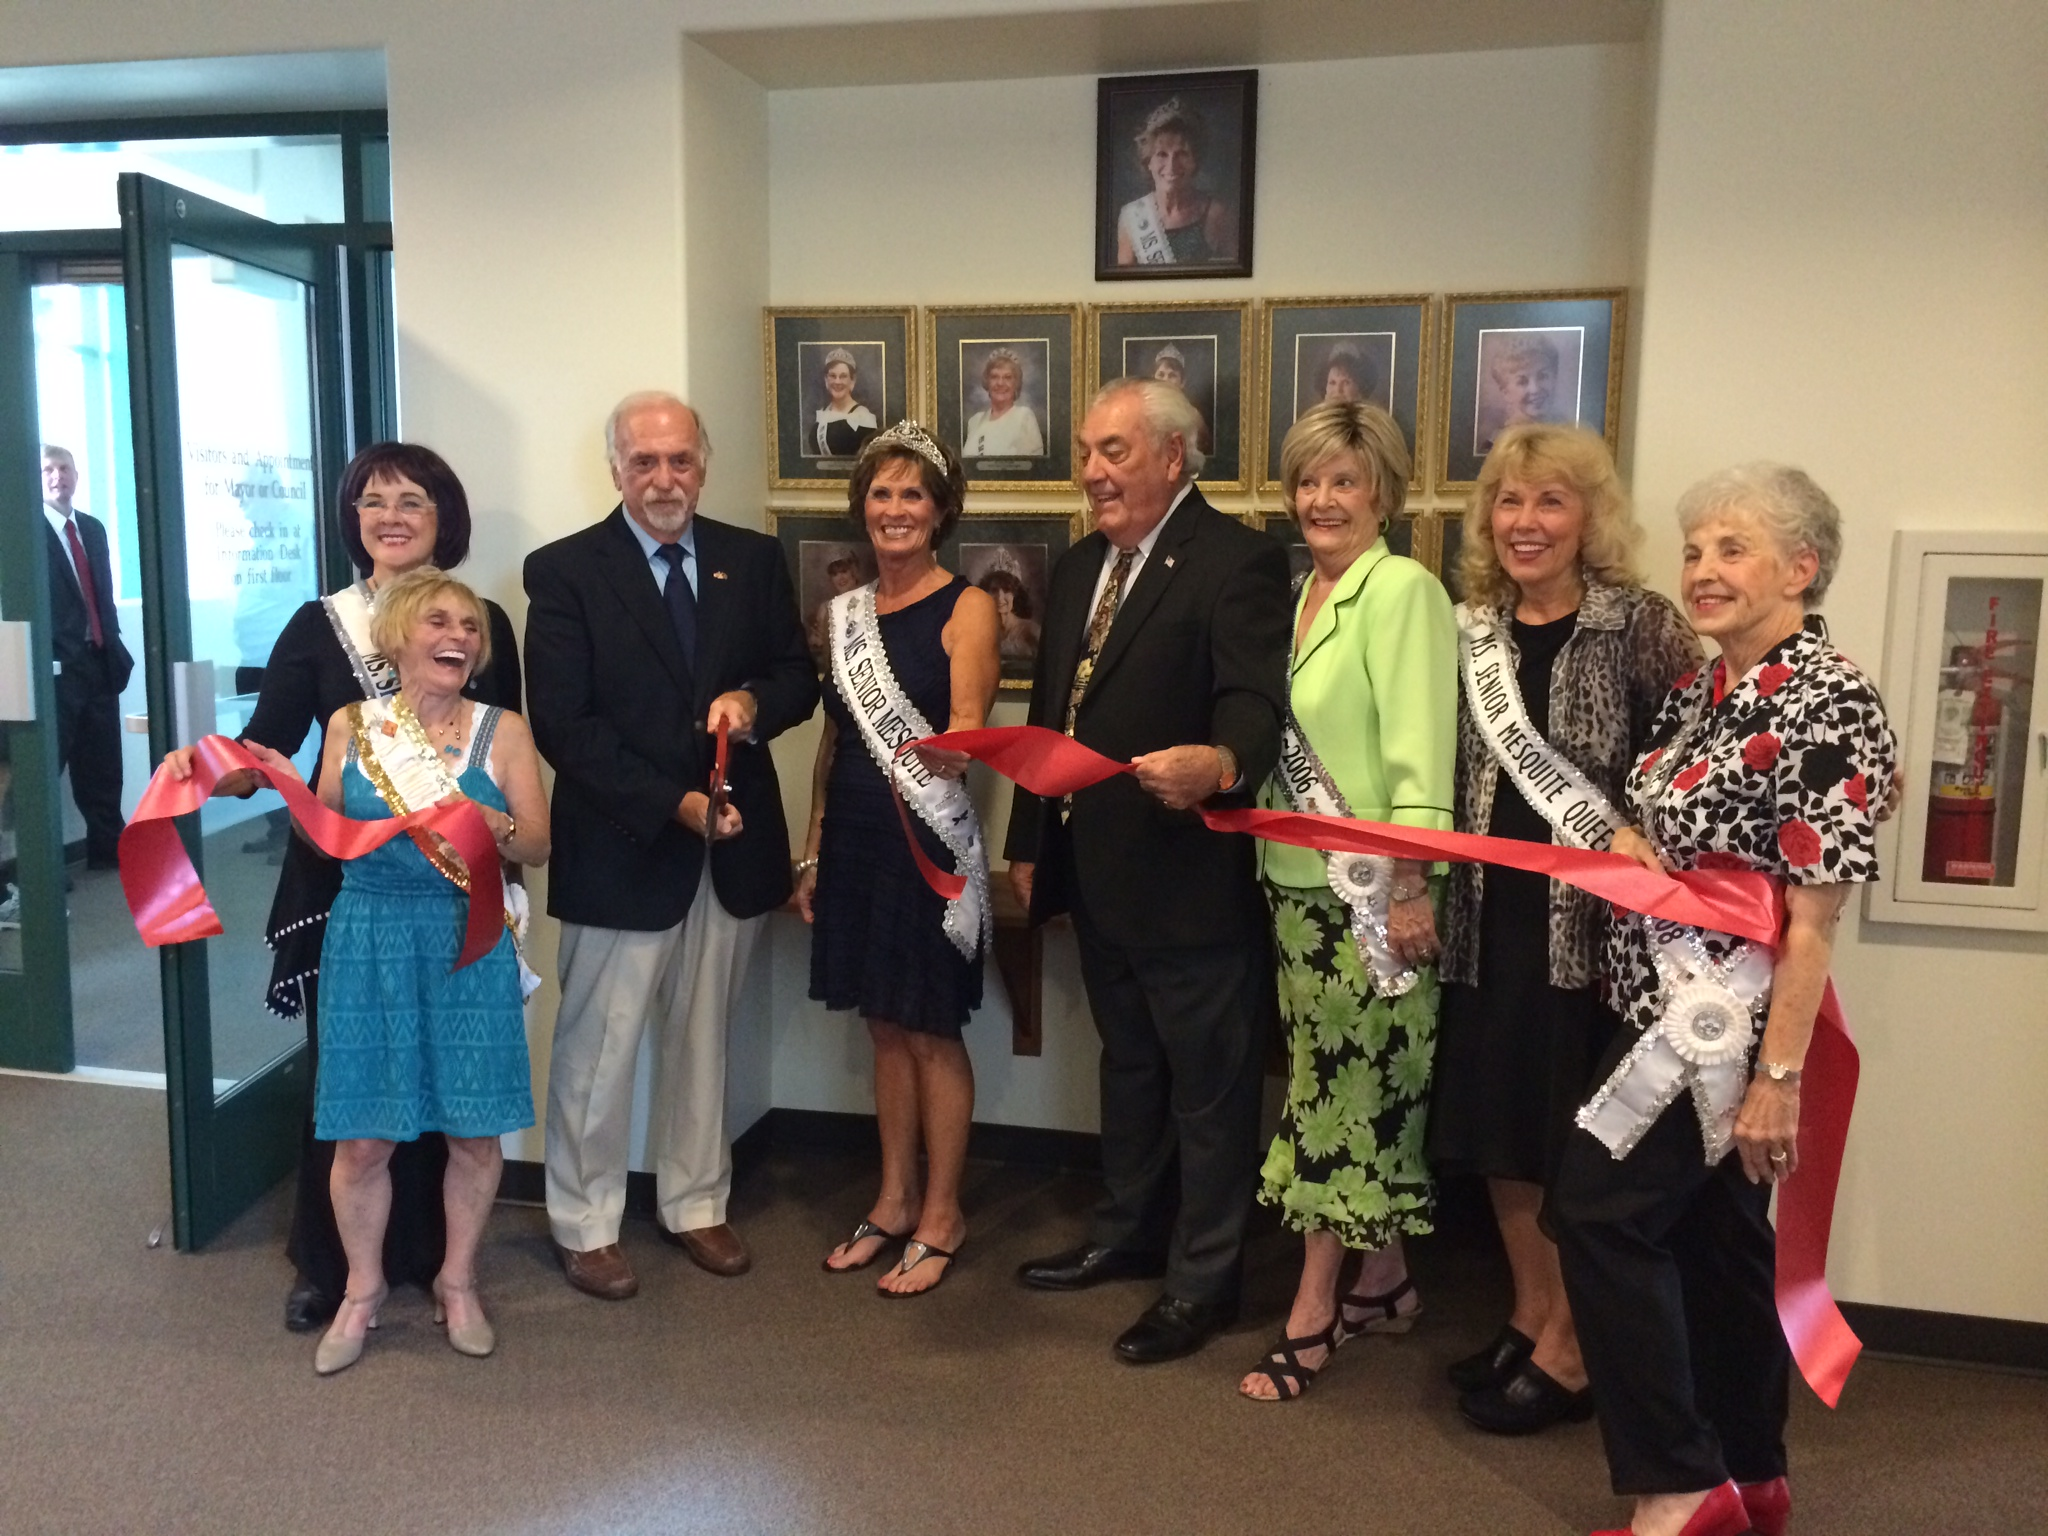 Queens return to City Hall